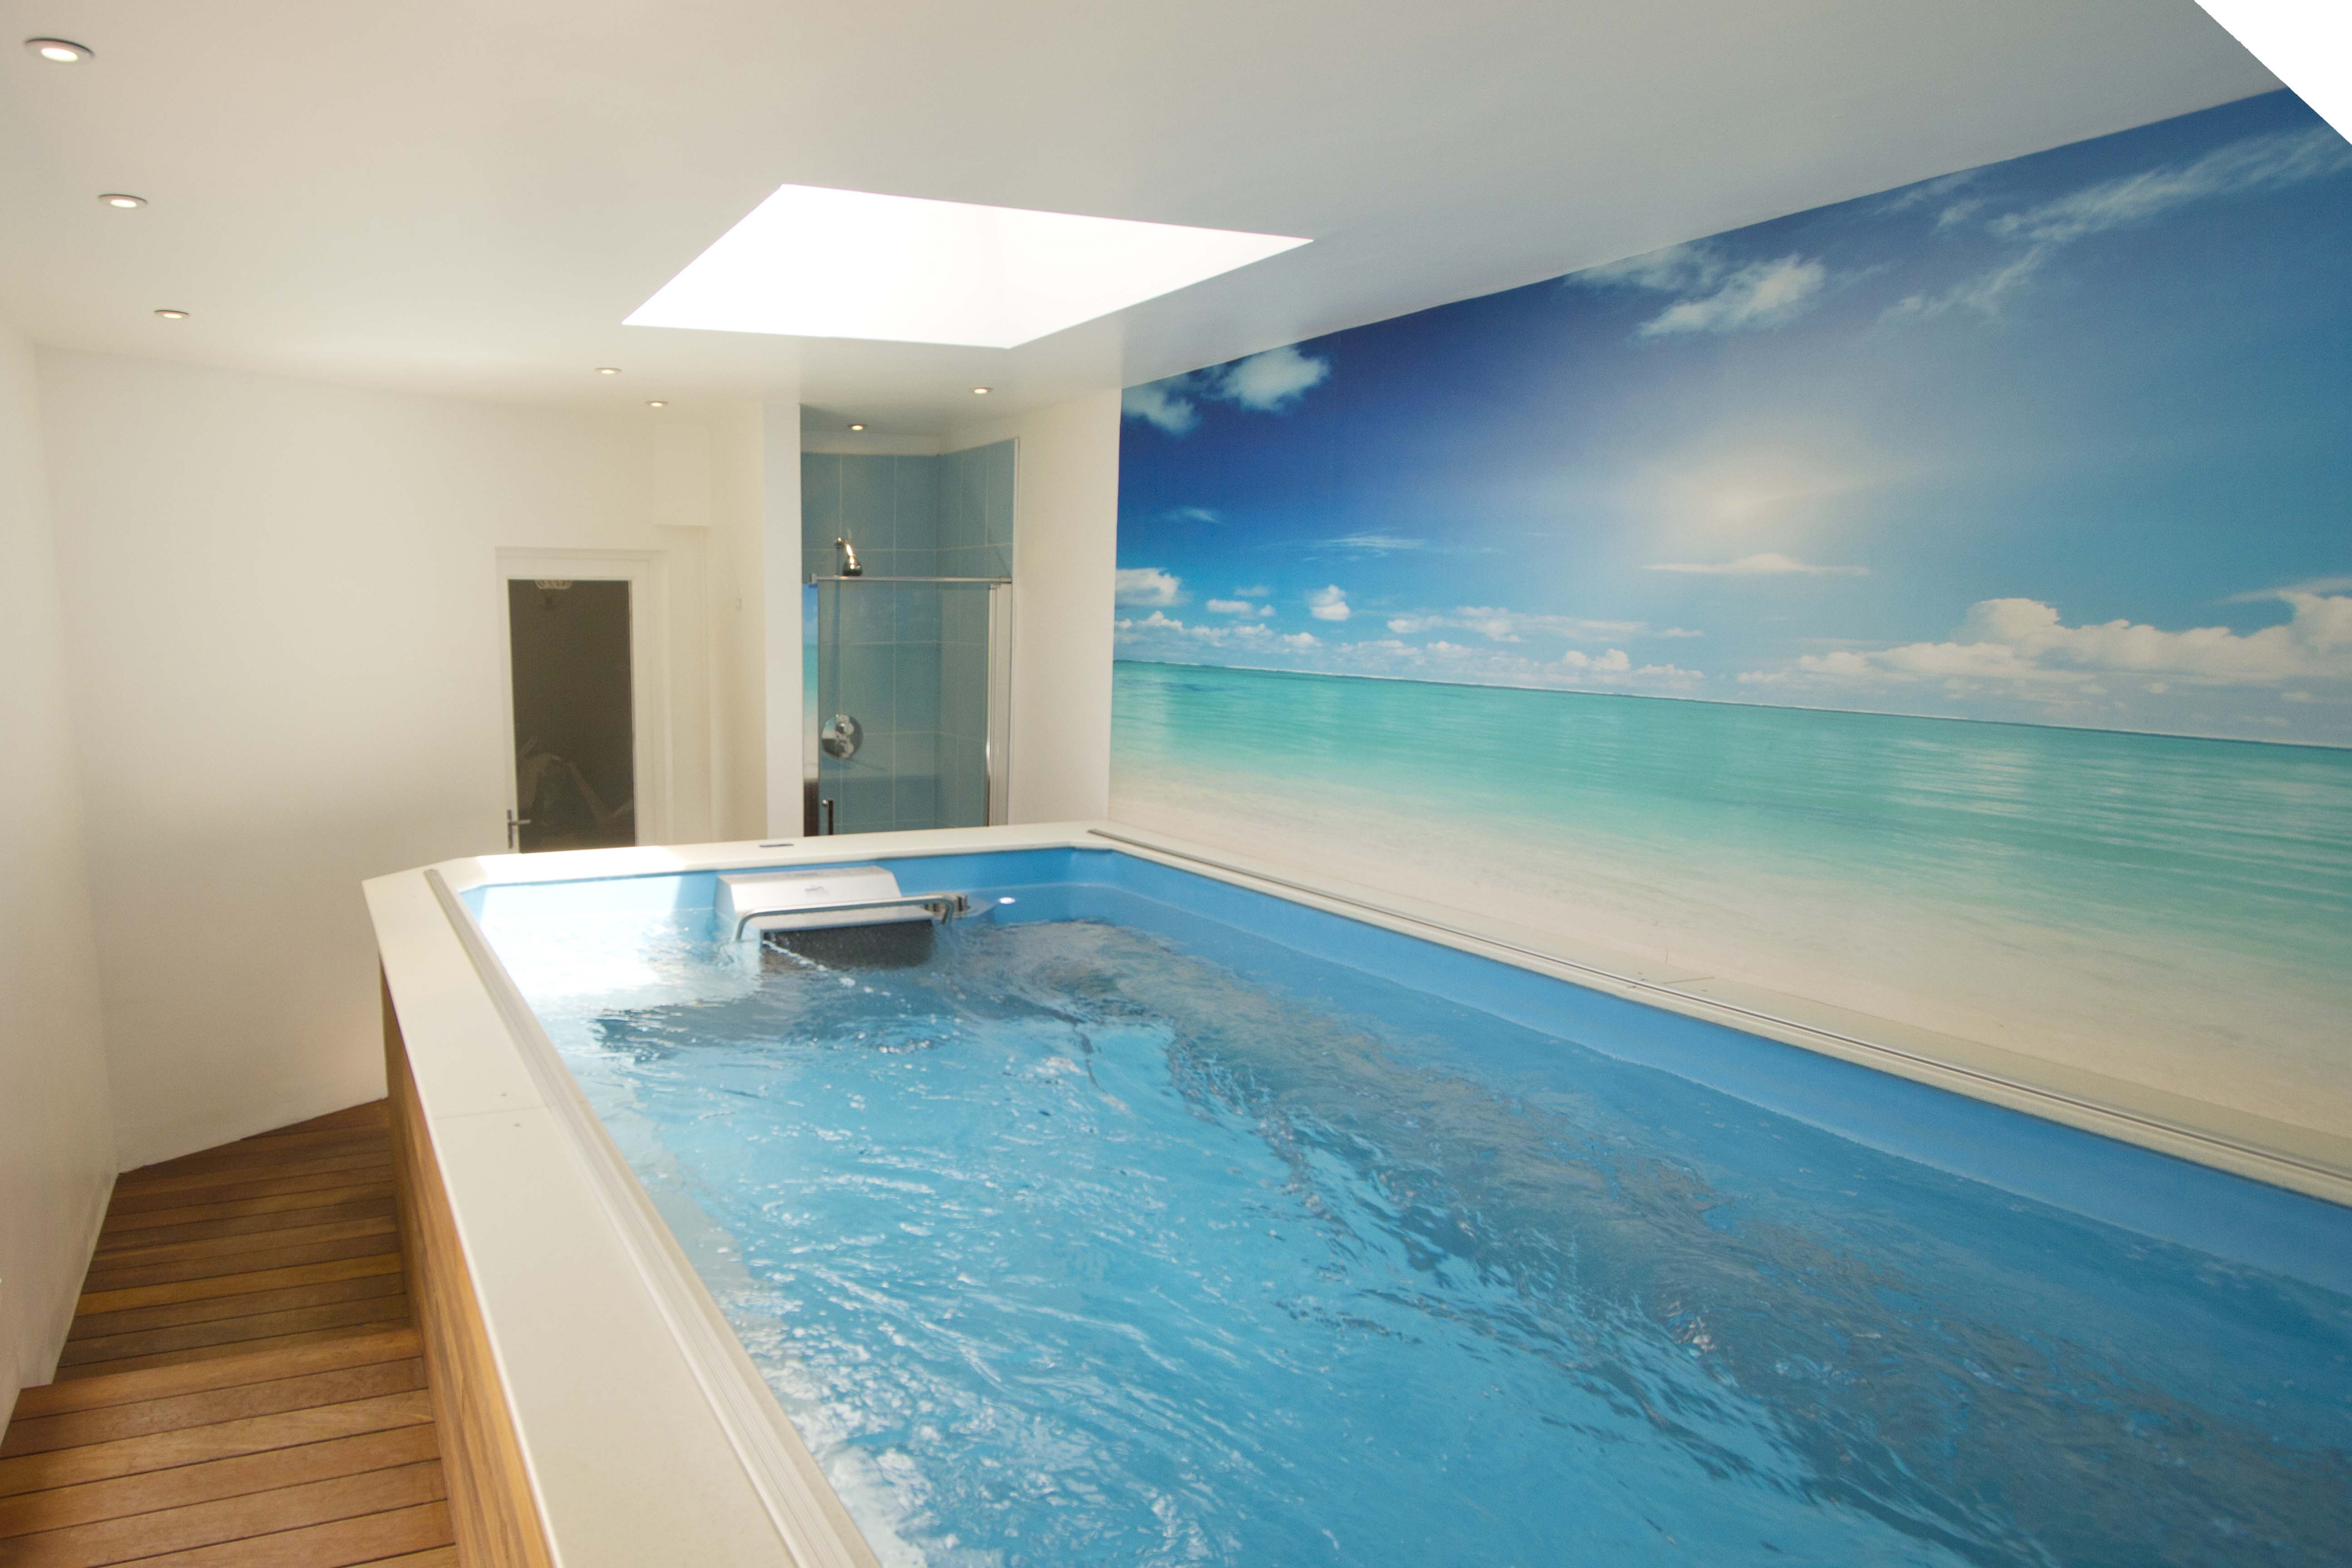 Model 14 Small Indoor Swimming Pools Uk Example